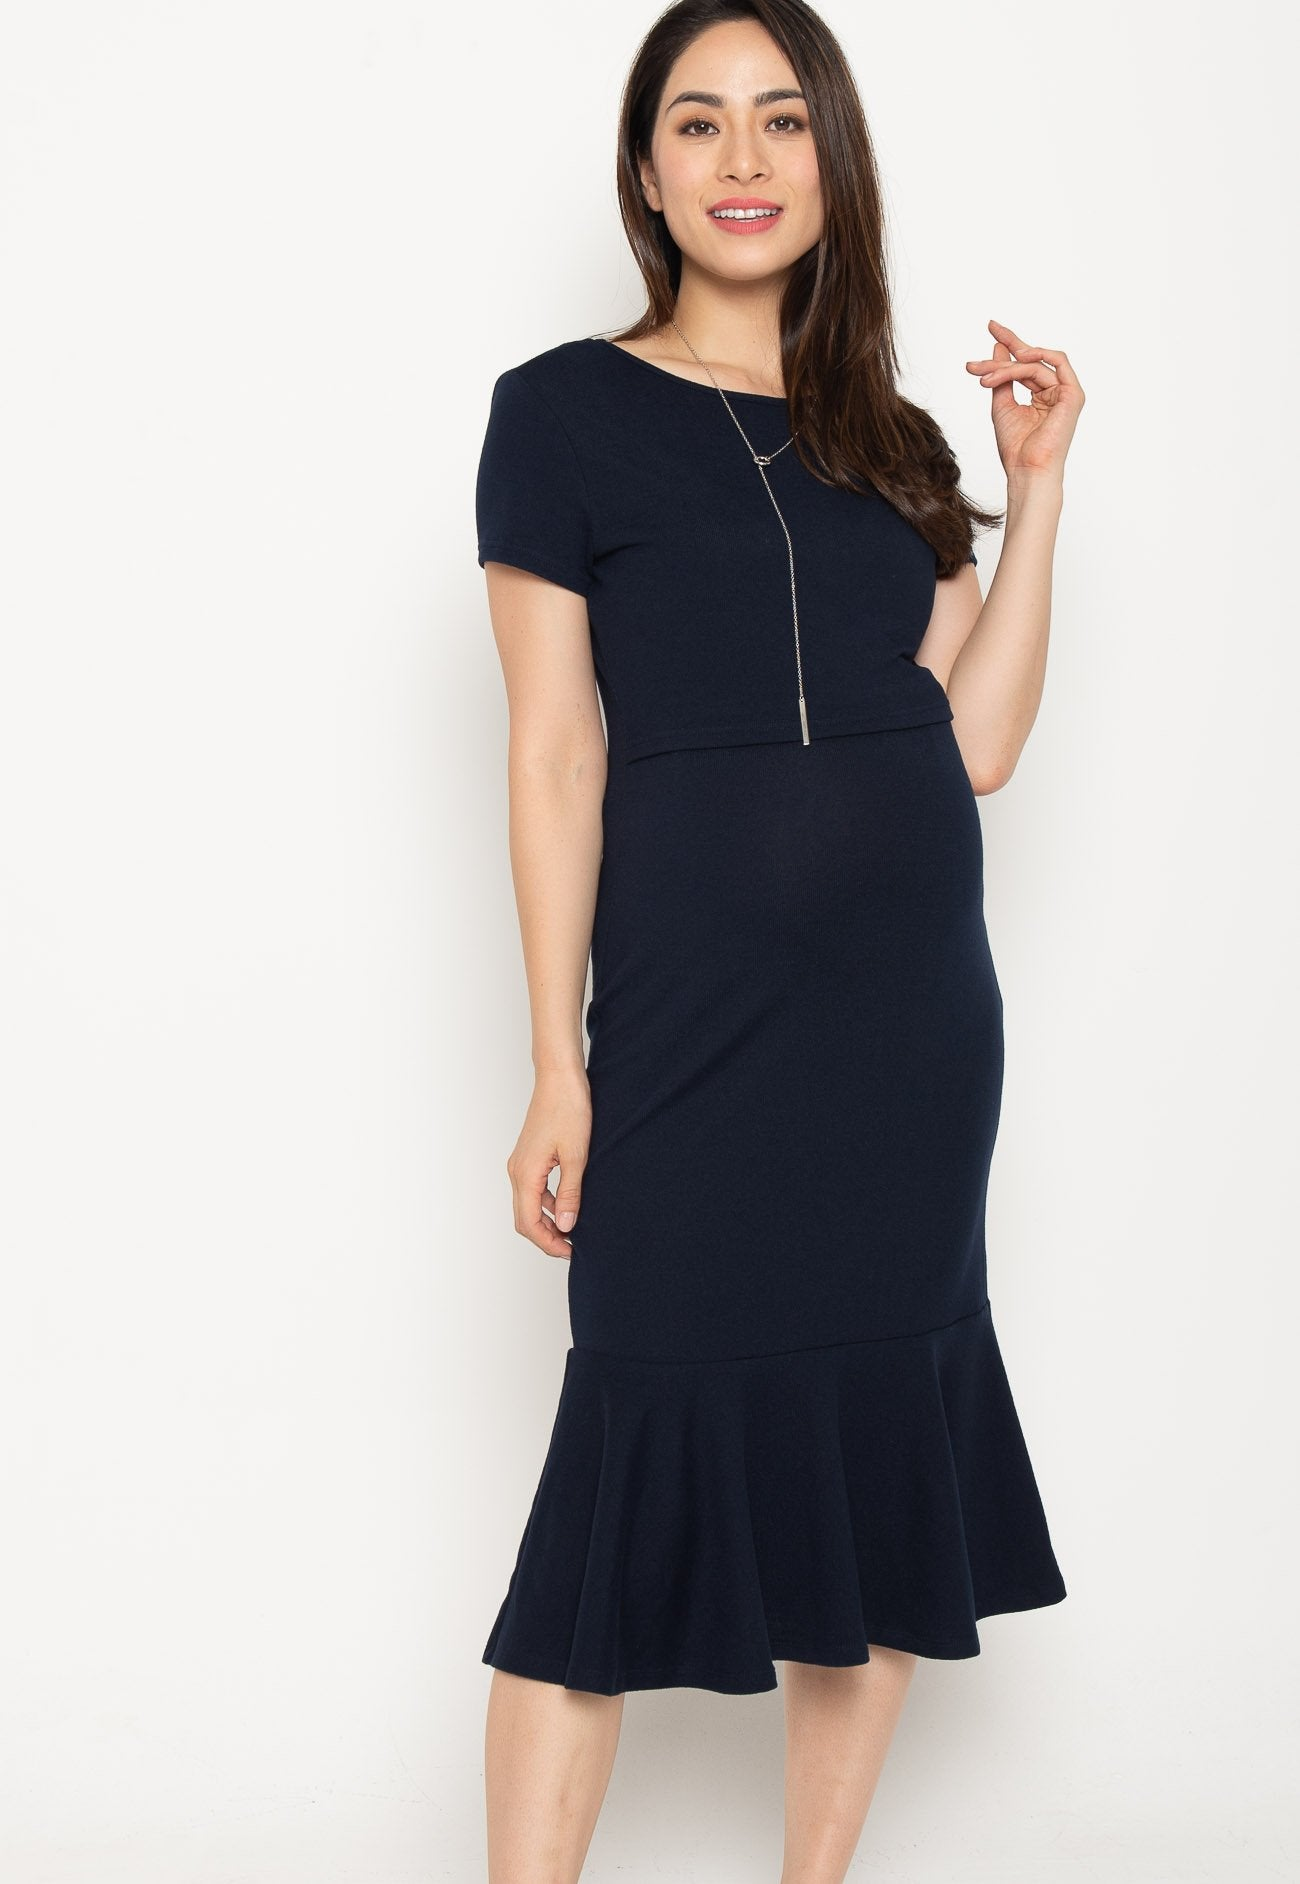 Xara Mermaid Nursing Dress in Navy